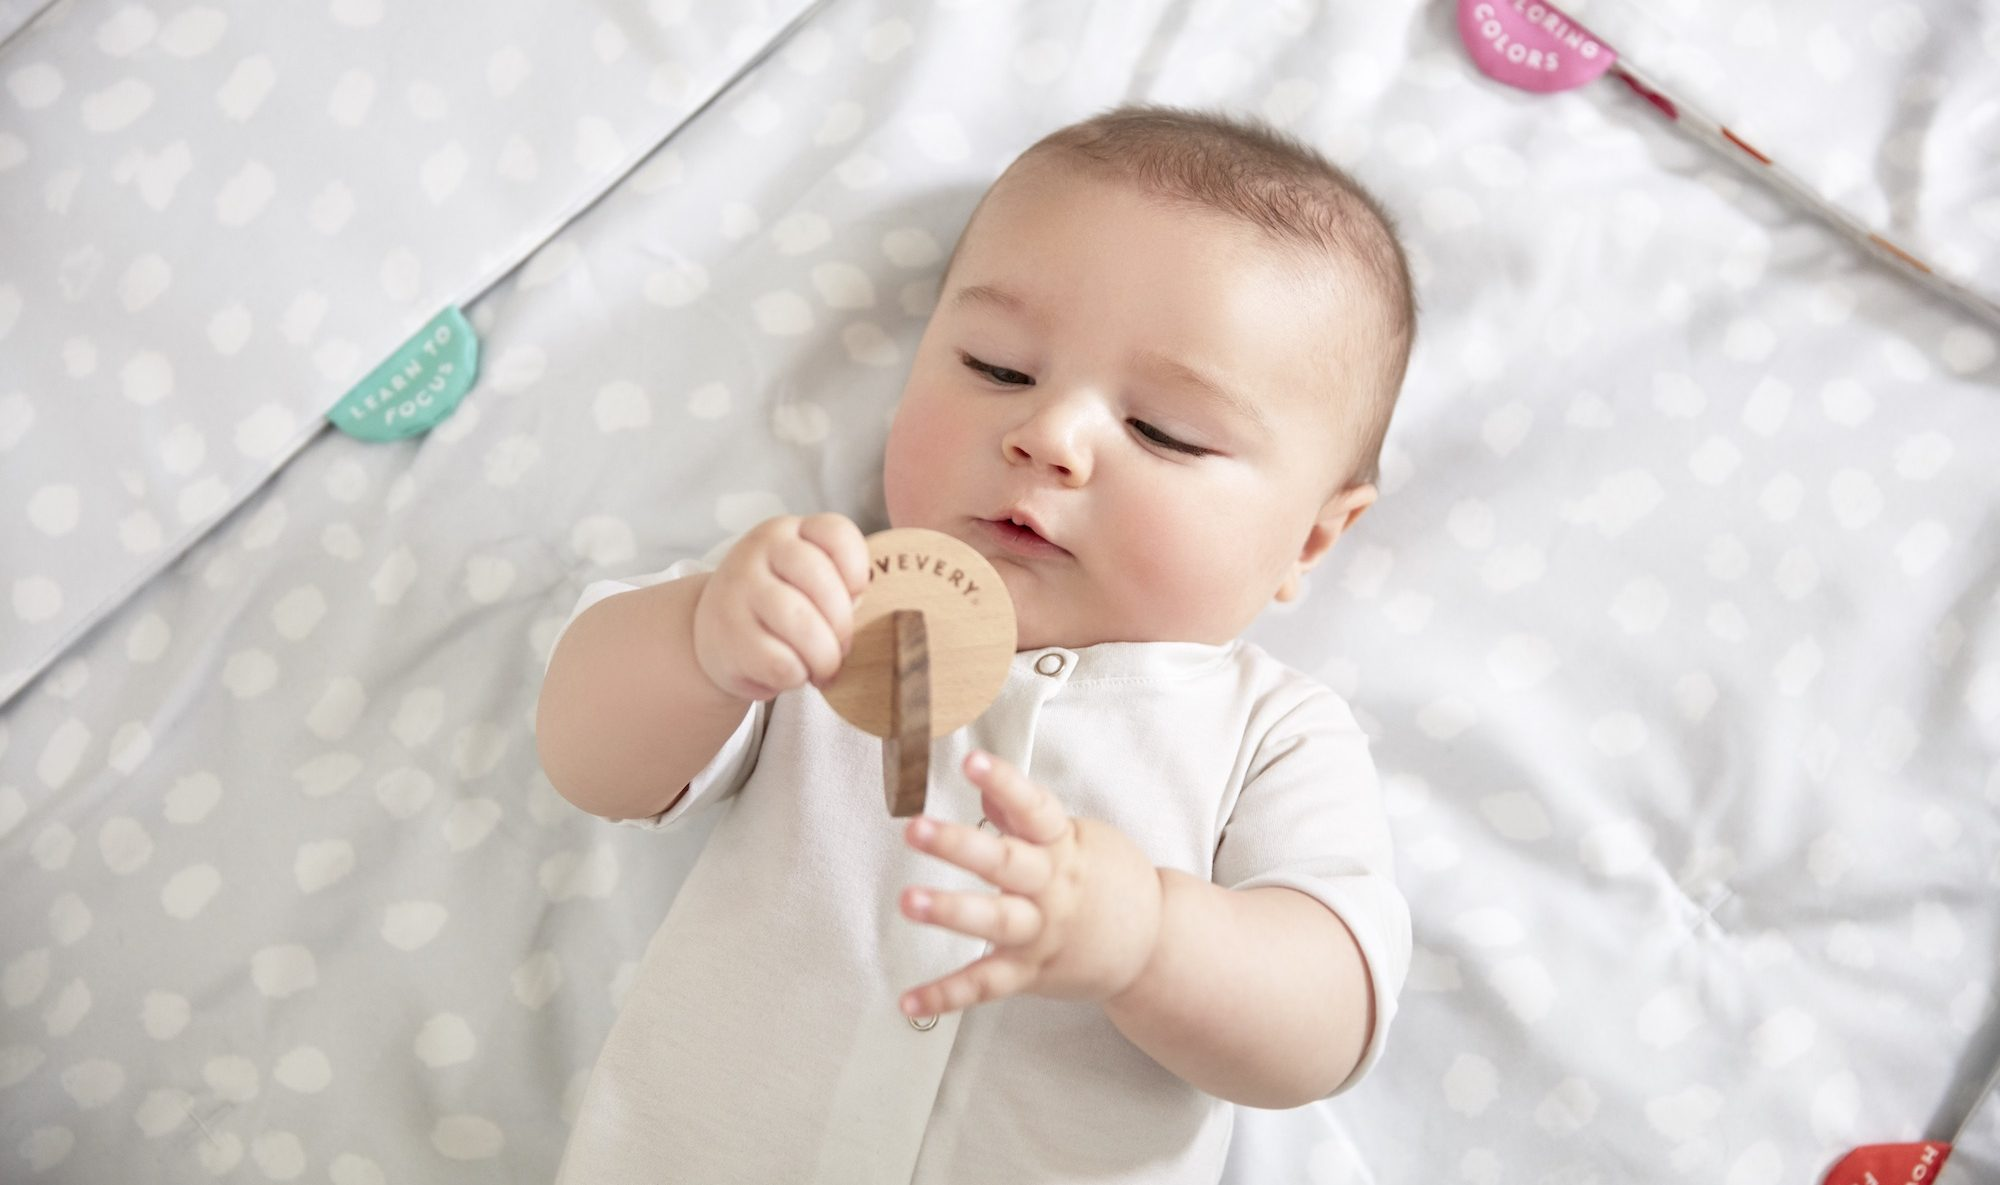 Baby laying down and holding a wooden toy by Lovevery